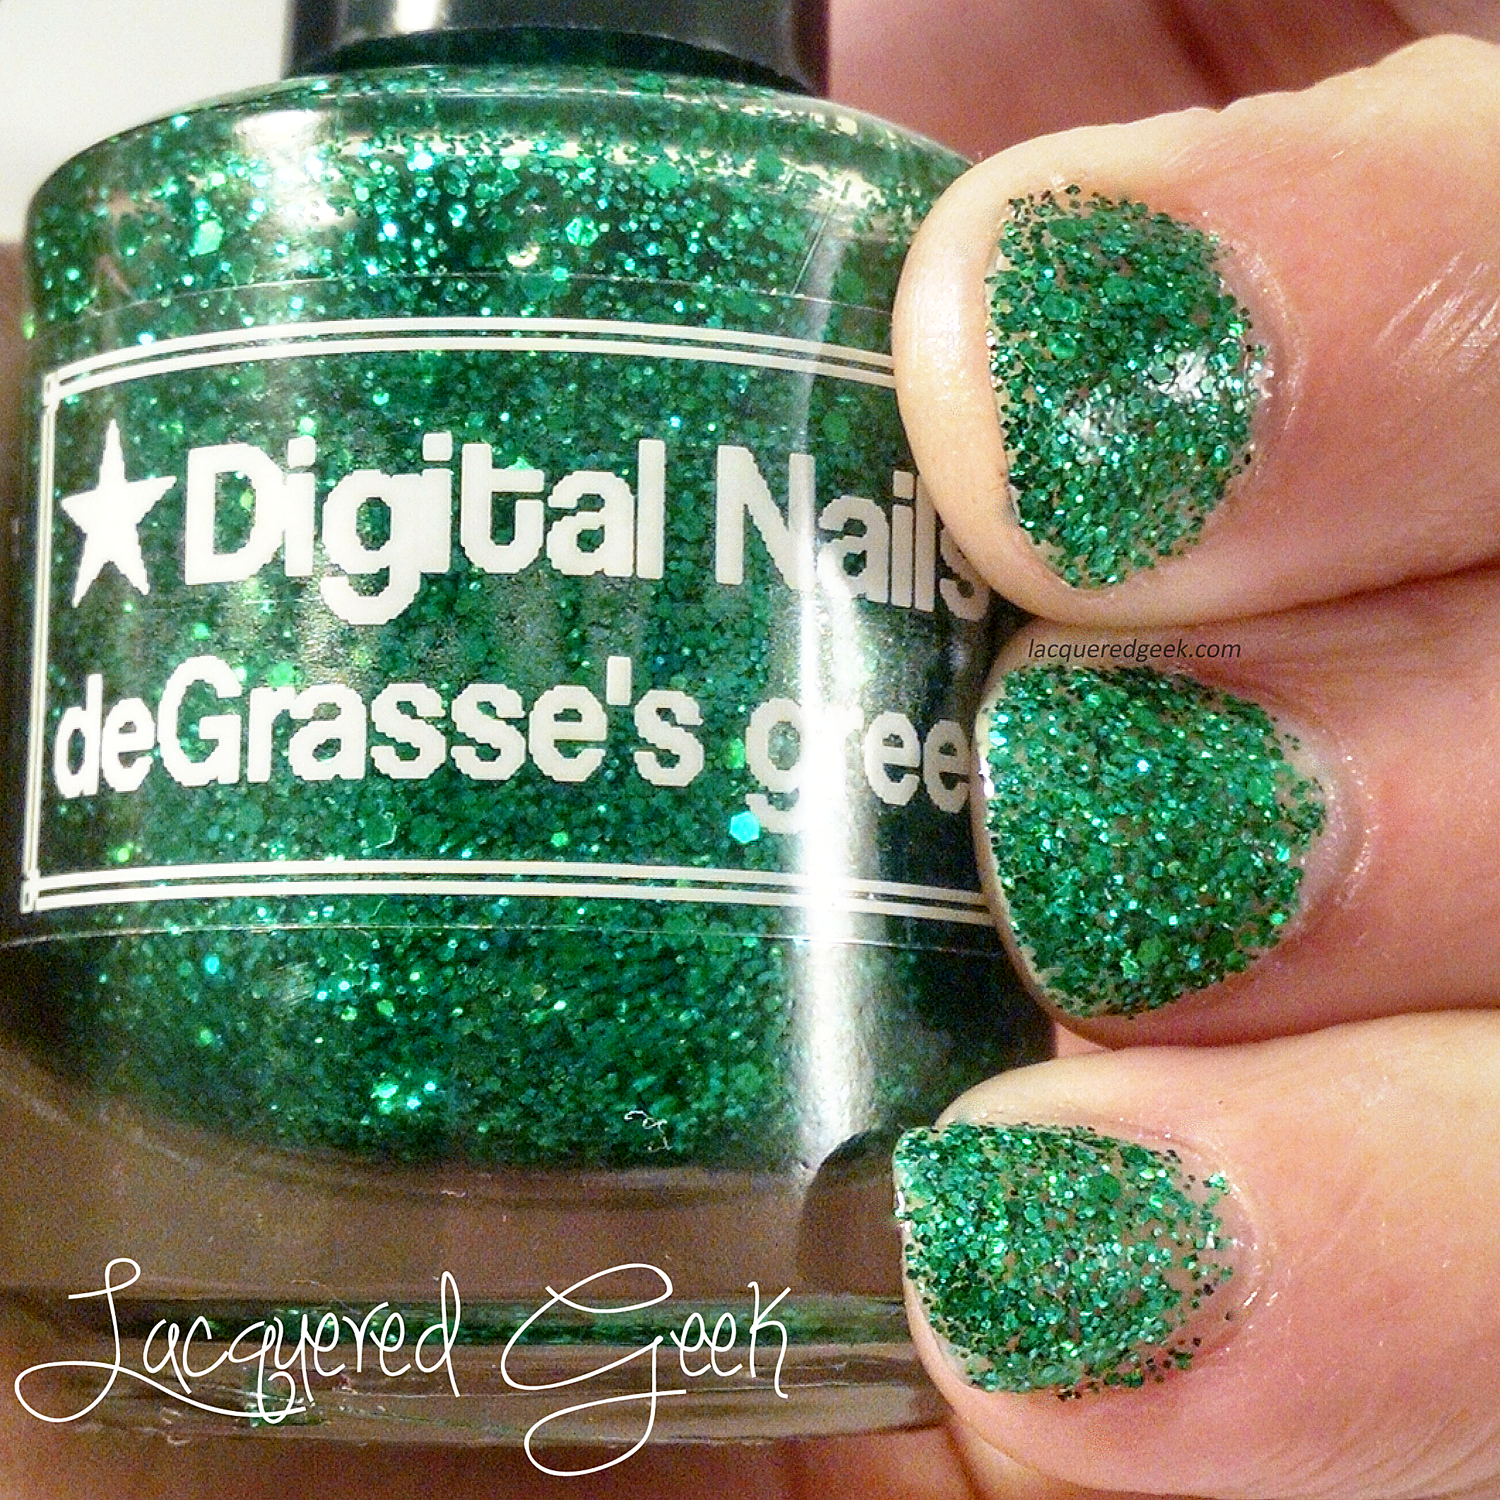 Digital Nails deGrasse's greener nail polish swatch